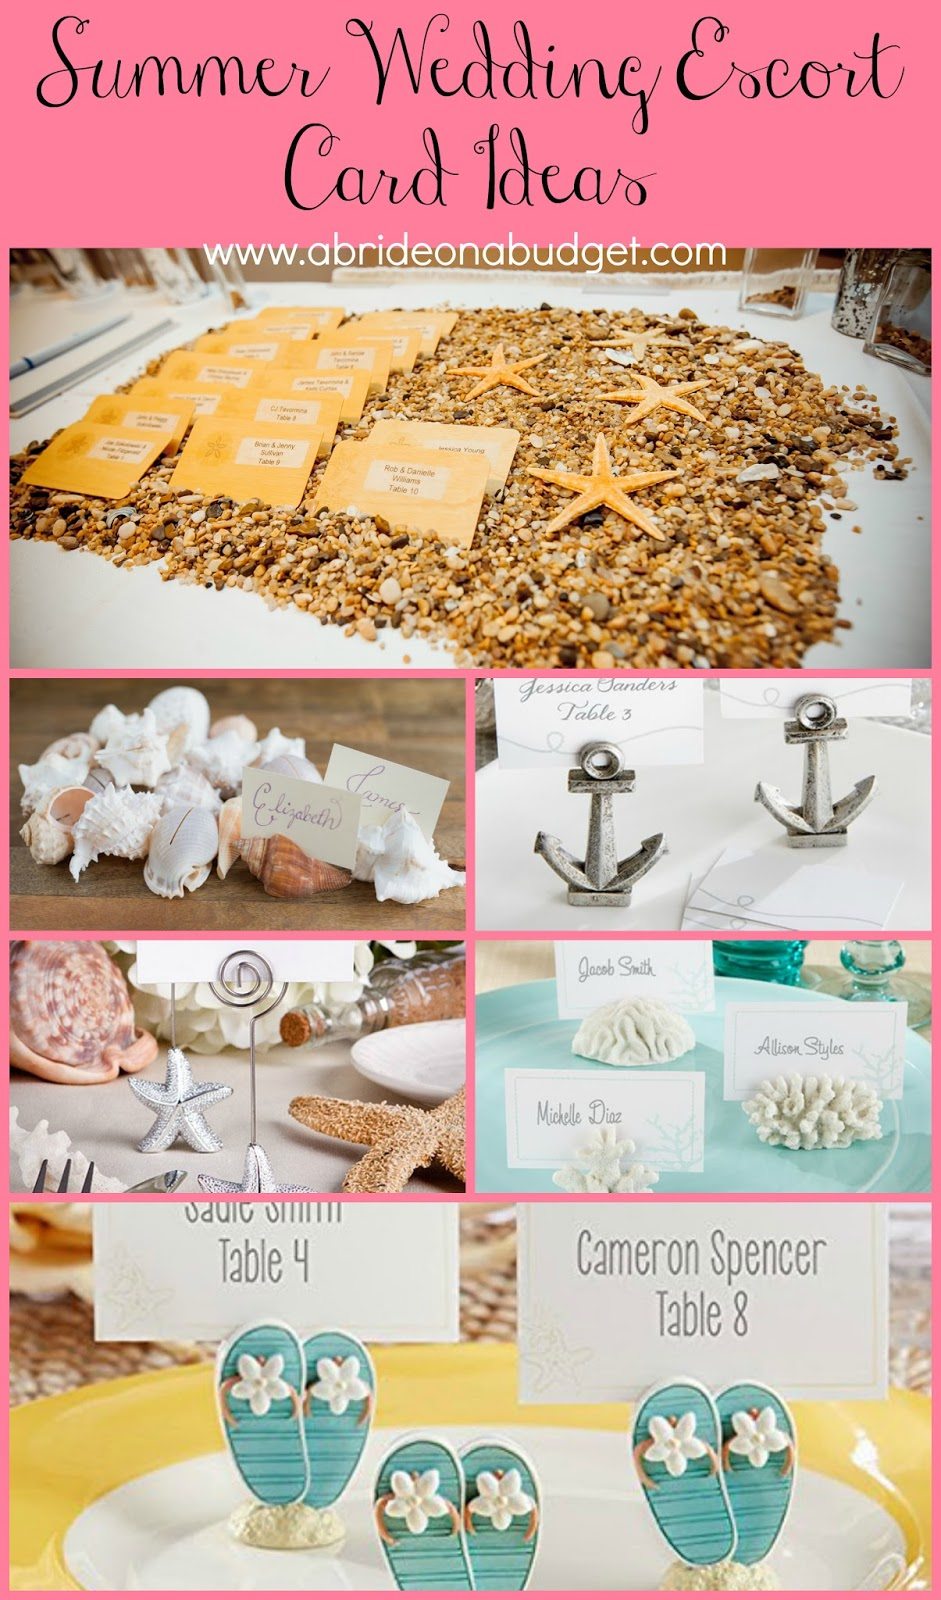 Planning a summer wedding? These REALLY CUTE summer wedding escort cards from www.abrideonabudget.com will be GREAT inspiration!